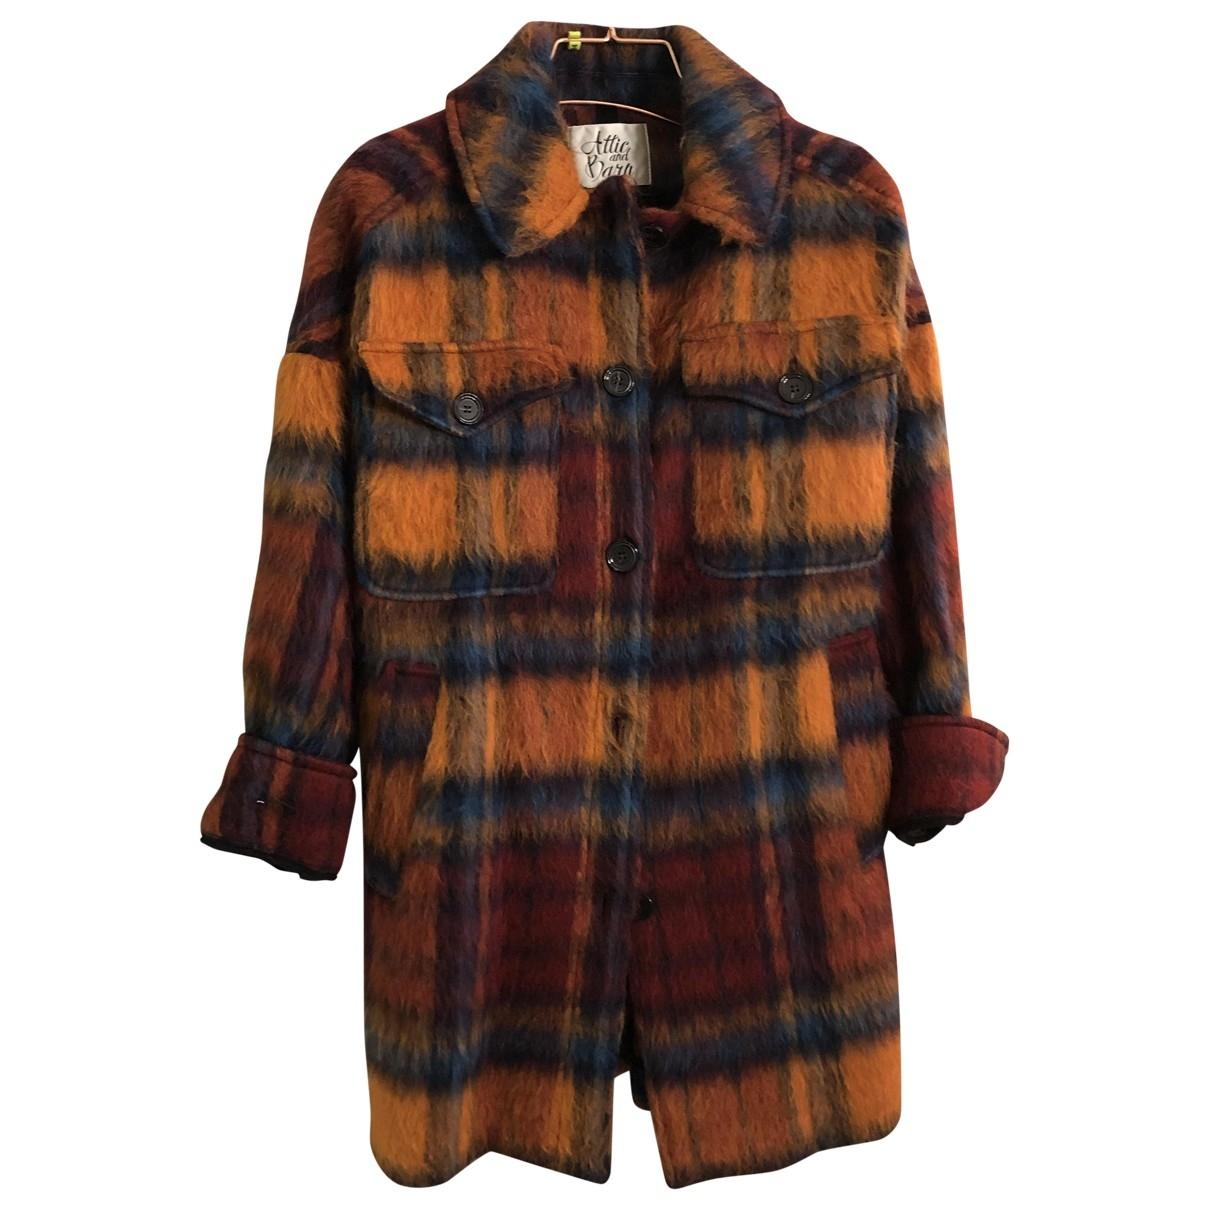 Attic And Barn \N Multicolour Wool coat for Women 42 IT